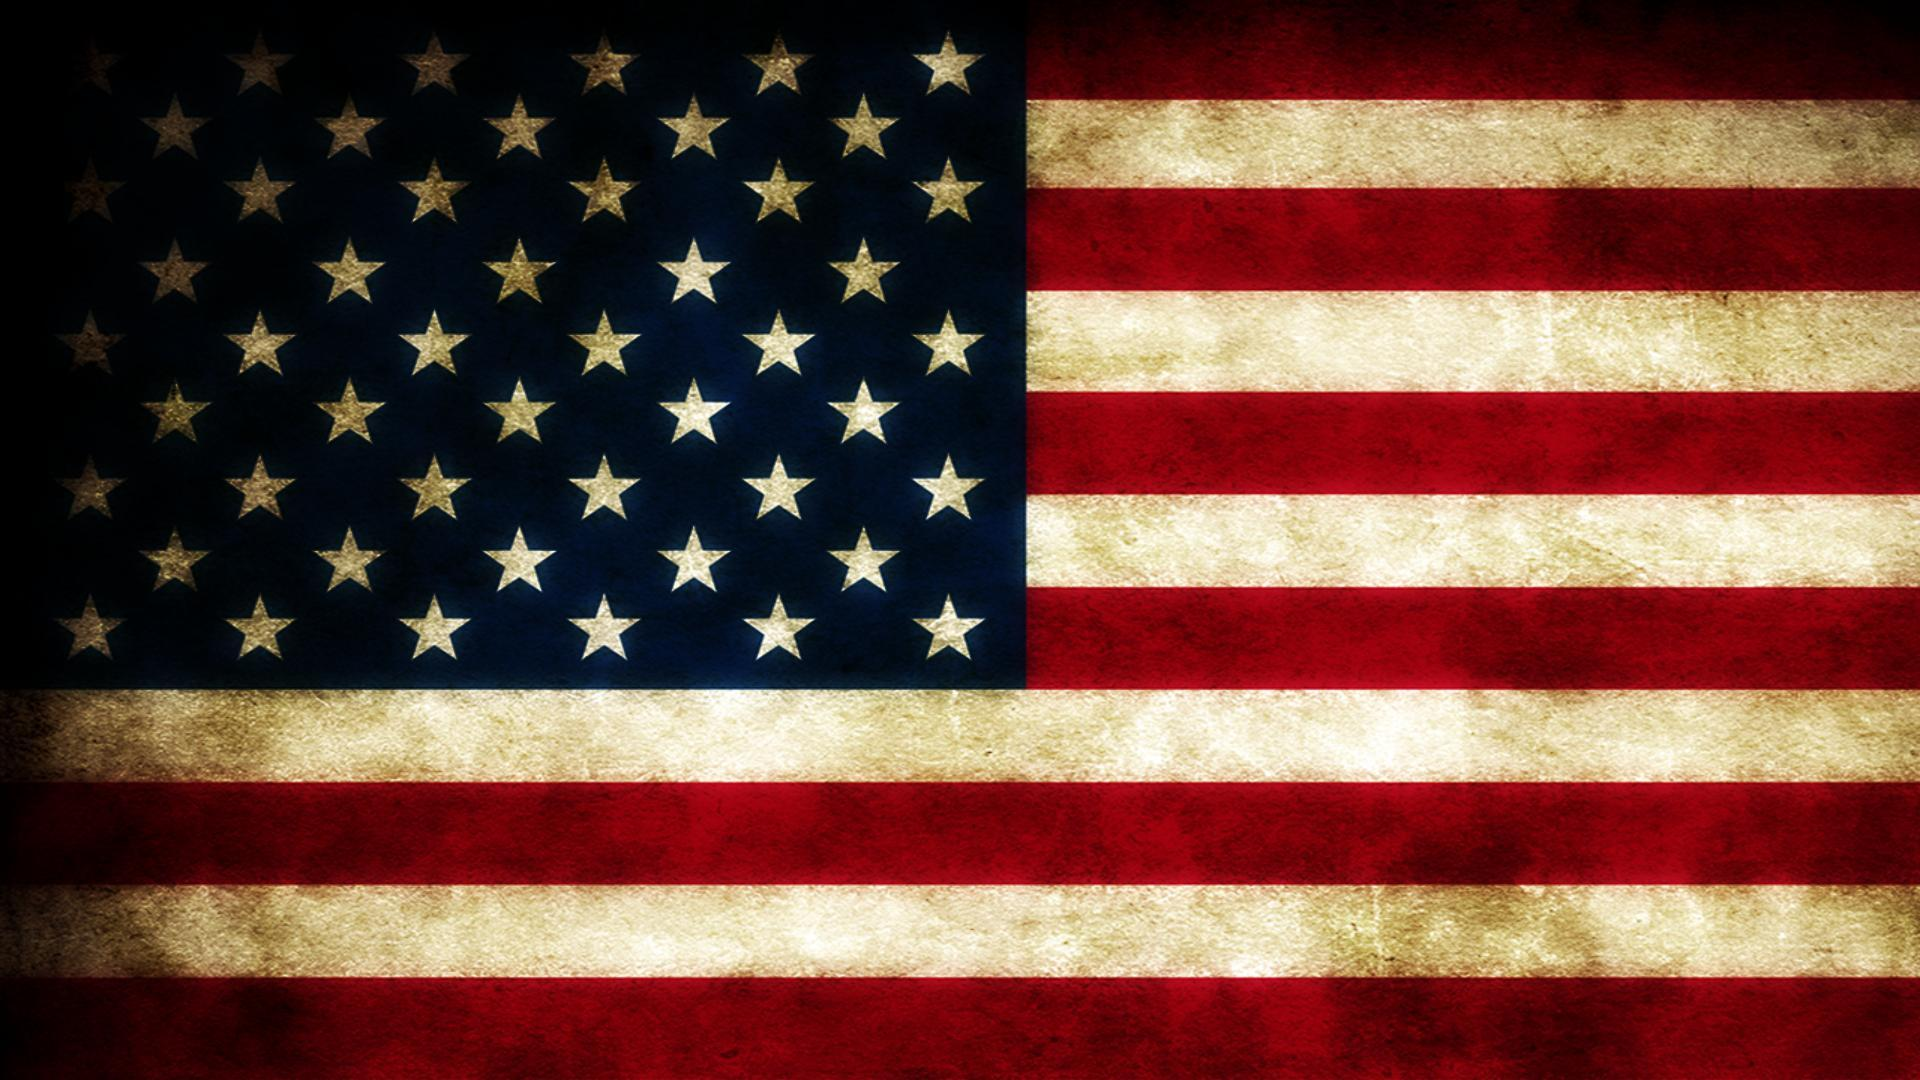 Red White And Blue Backgrounds - Wallpaper Cave - photo#13